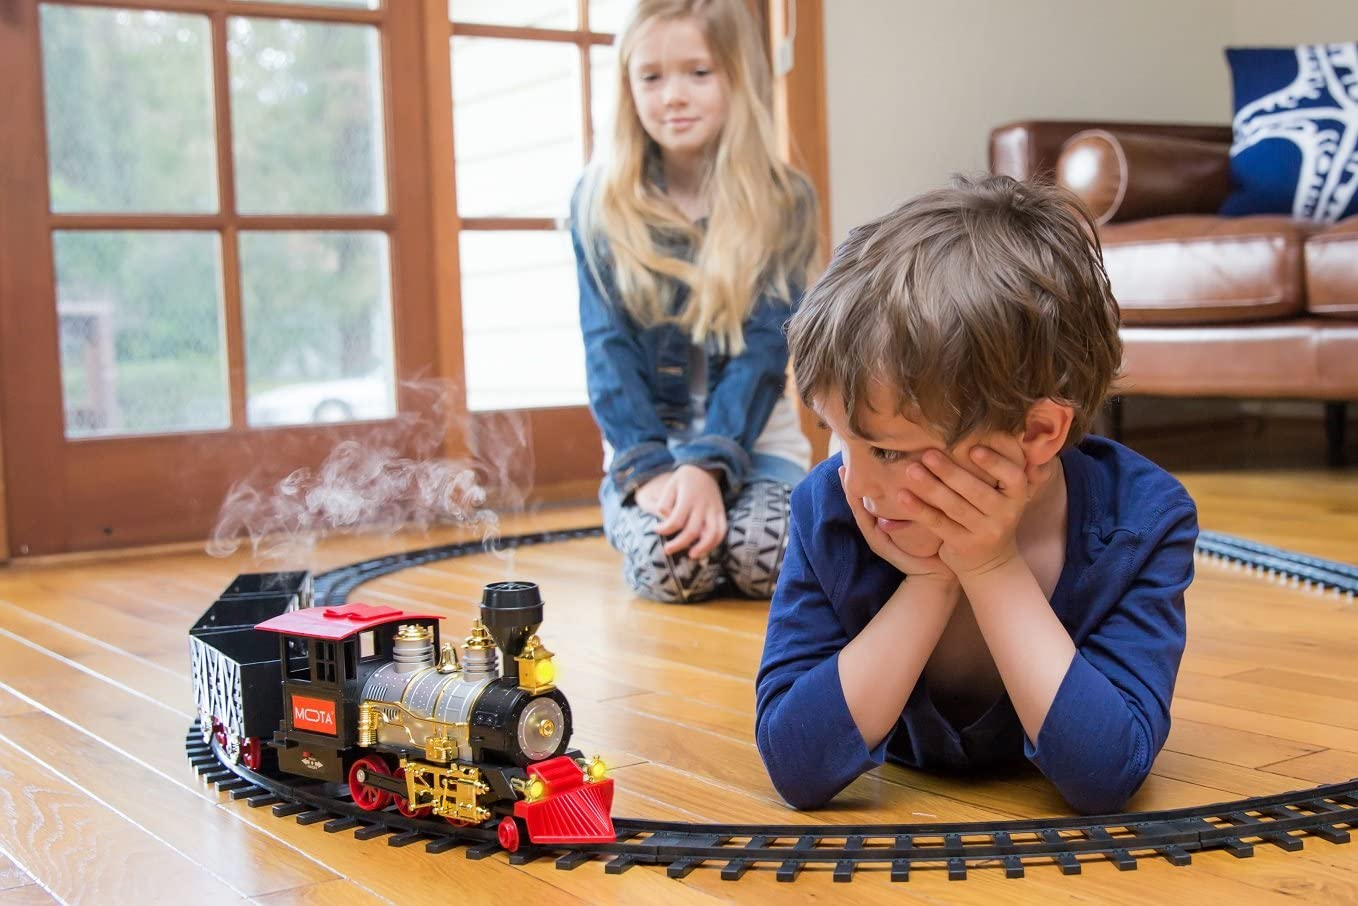 Top 10 Best Train Sets For Toddlers You Can Find in 2020 10